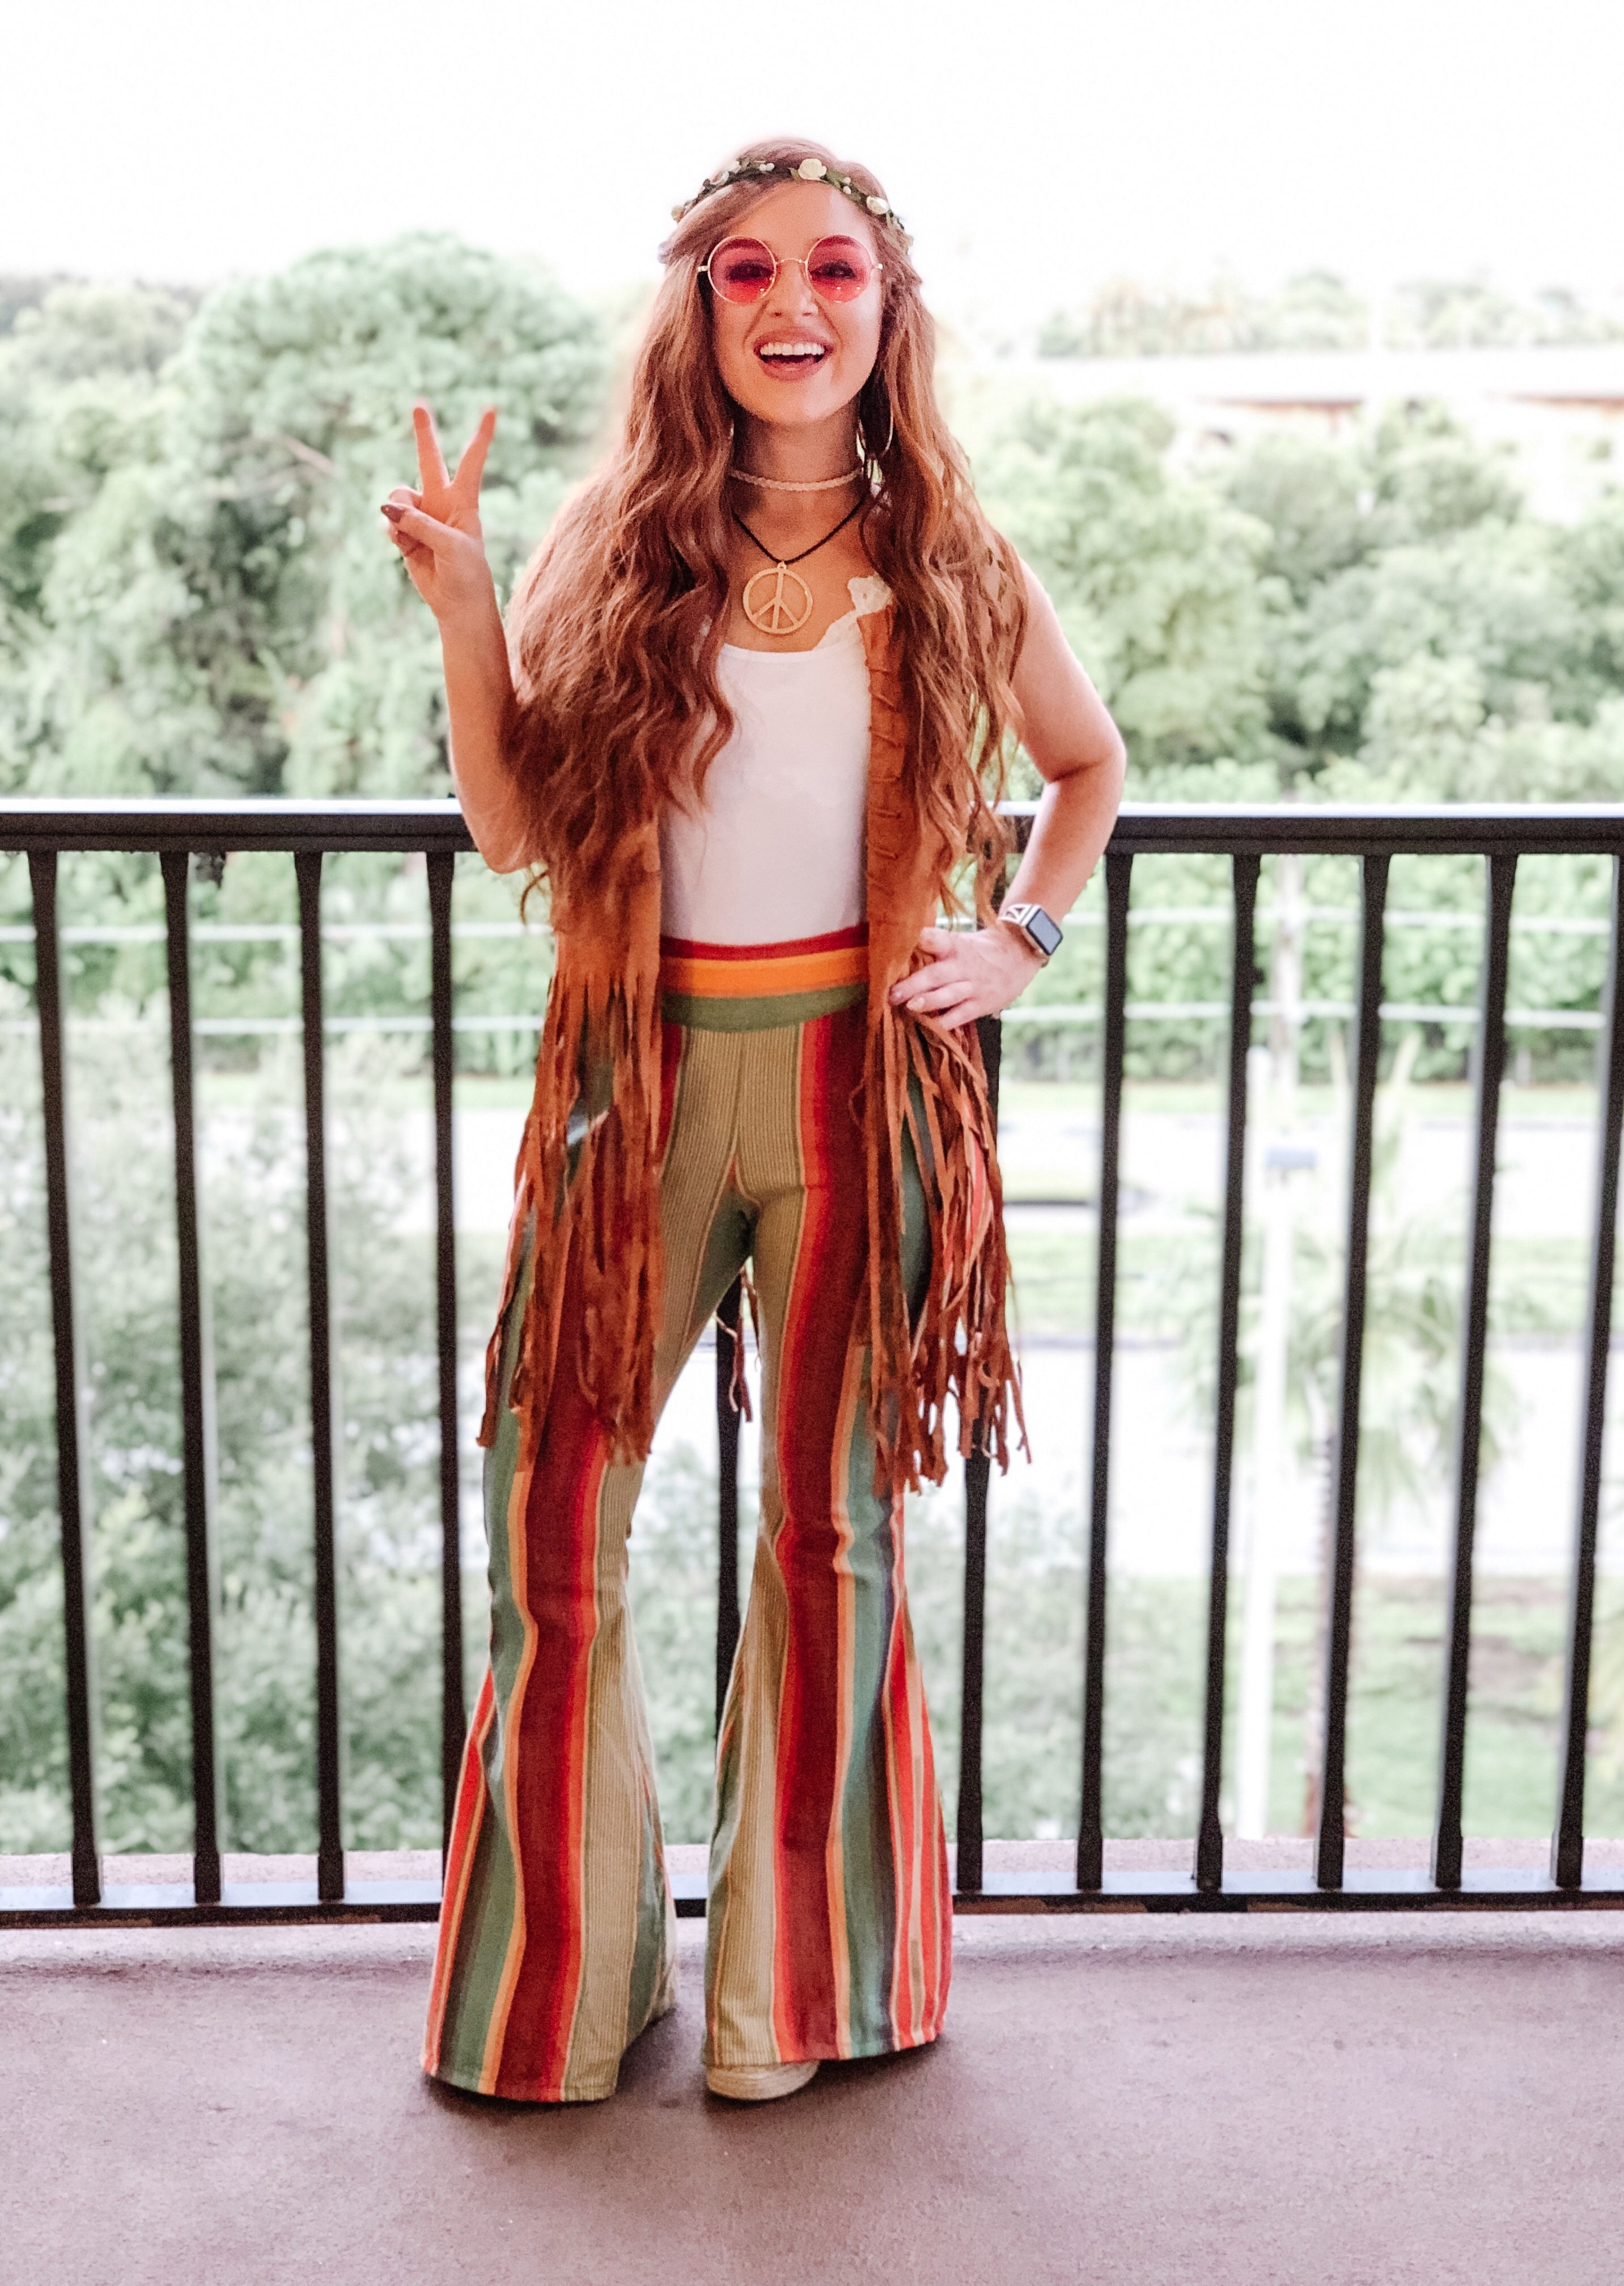 Hippy 6s 6s outfit, costume inspiration  Halloween outfits